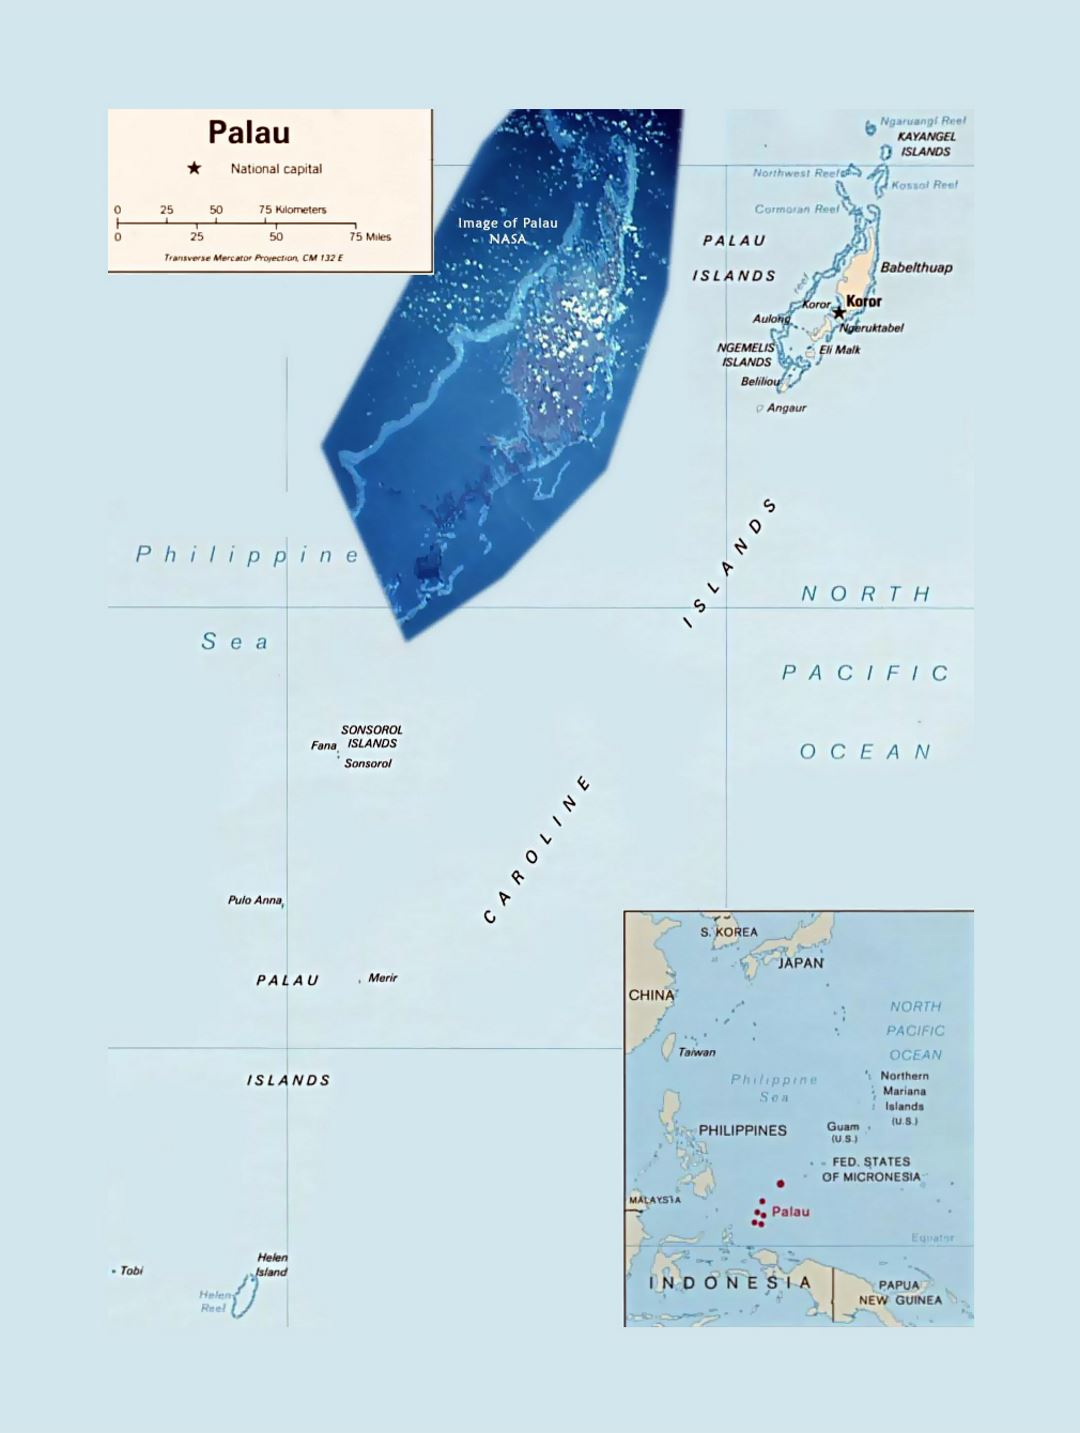 Picture of: Detailed Political Map Of Palau With Capital And Island Names Palau Oceania Mapsland Maps Of The World